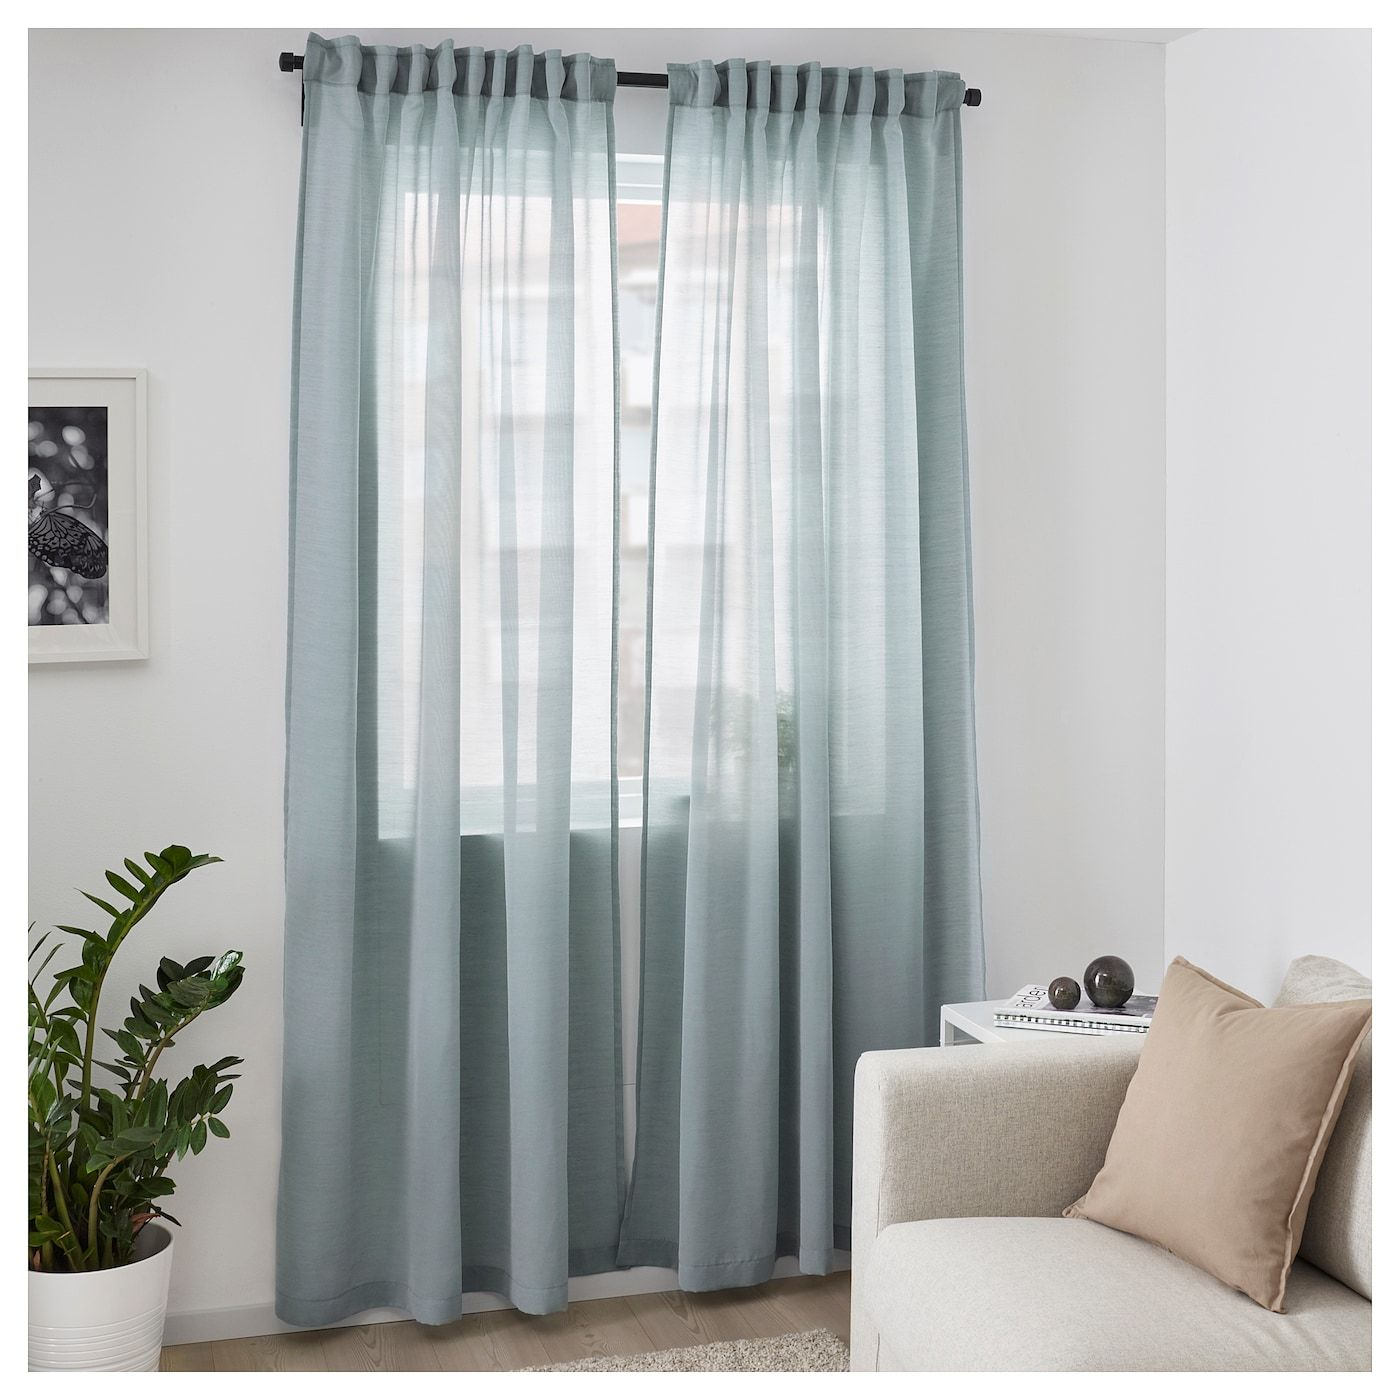 Ikea Gardinen Schlafzimmer Gardinenpaar Hilja Blau In 2019 Home Decoration Curtains Ikea